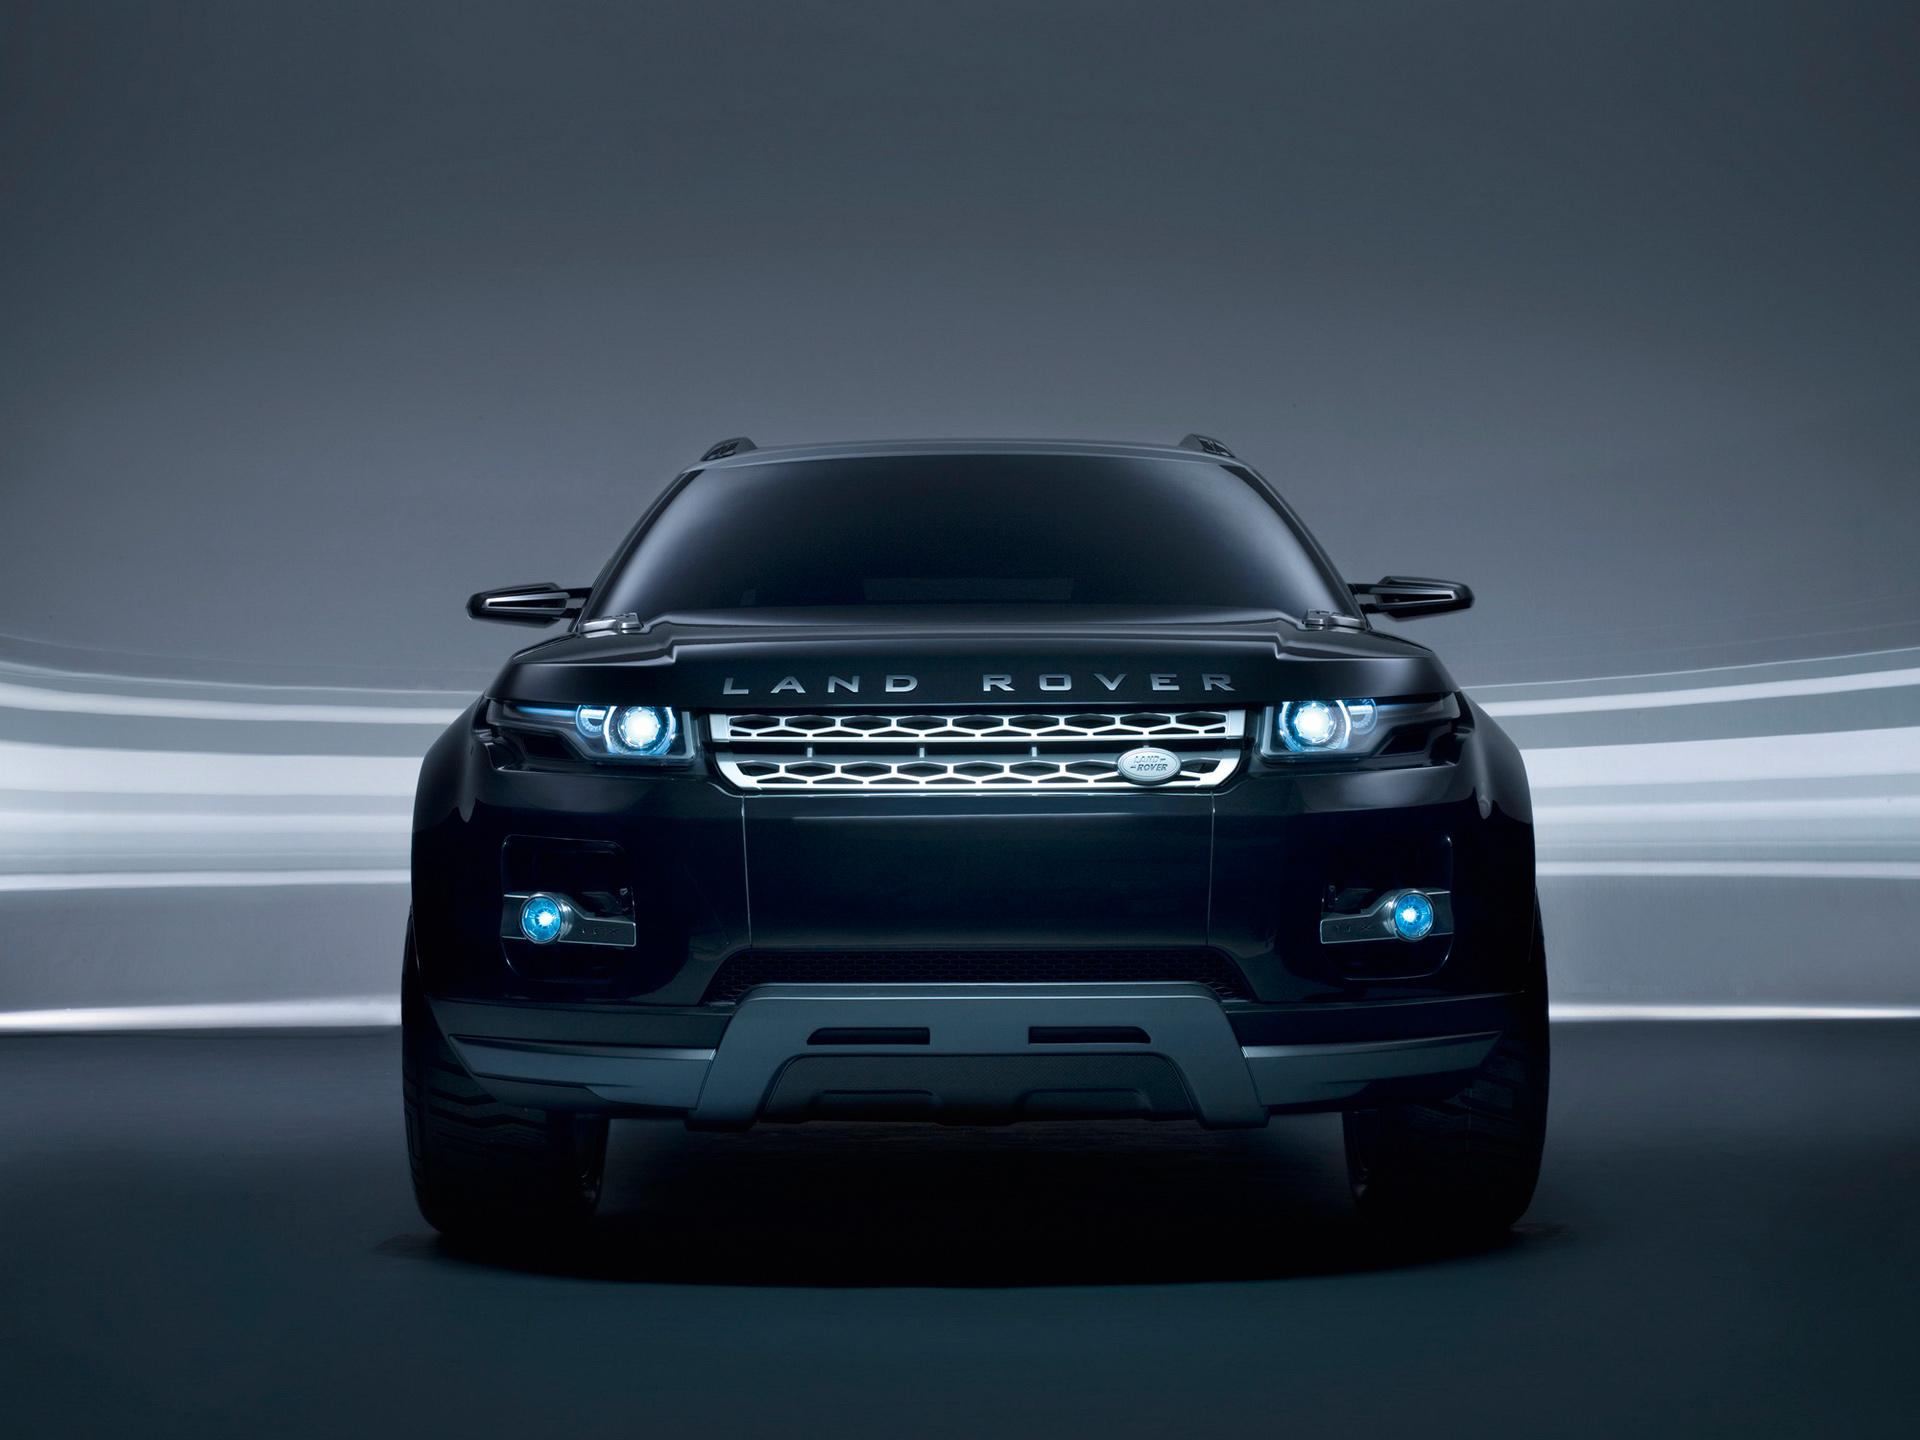 Обои Front Land Rover 1920x1440